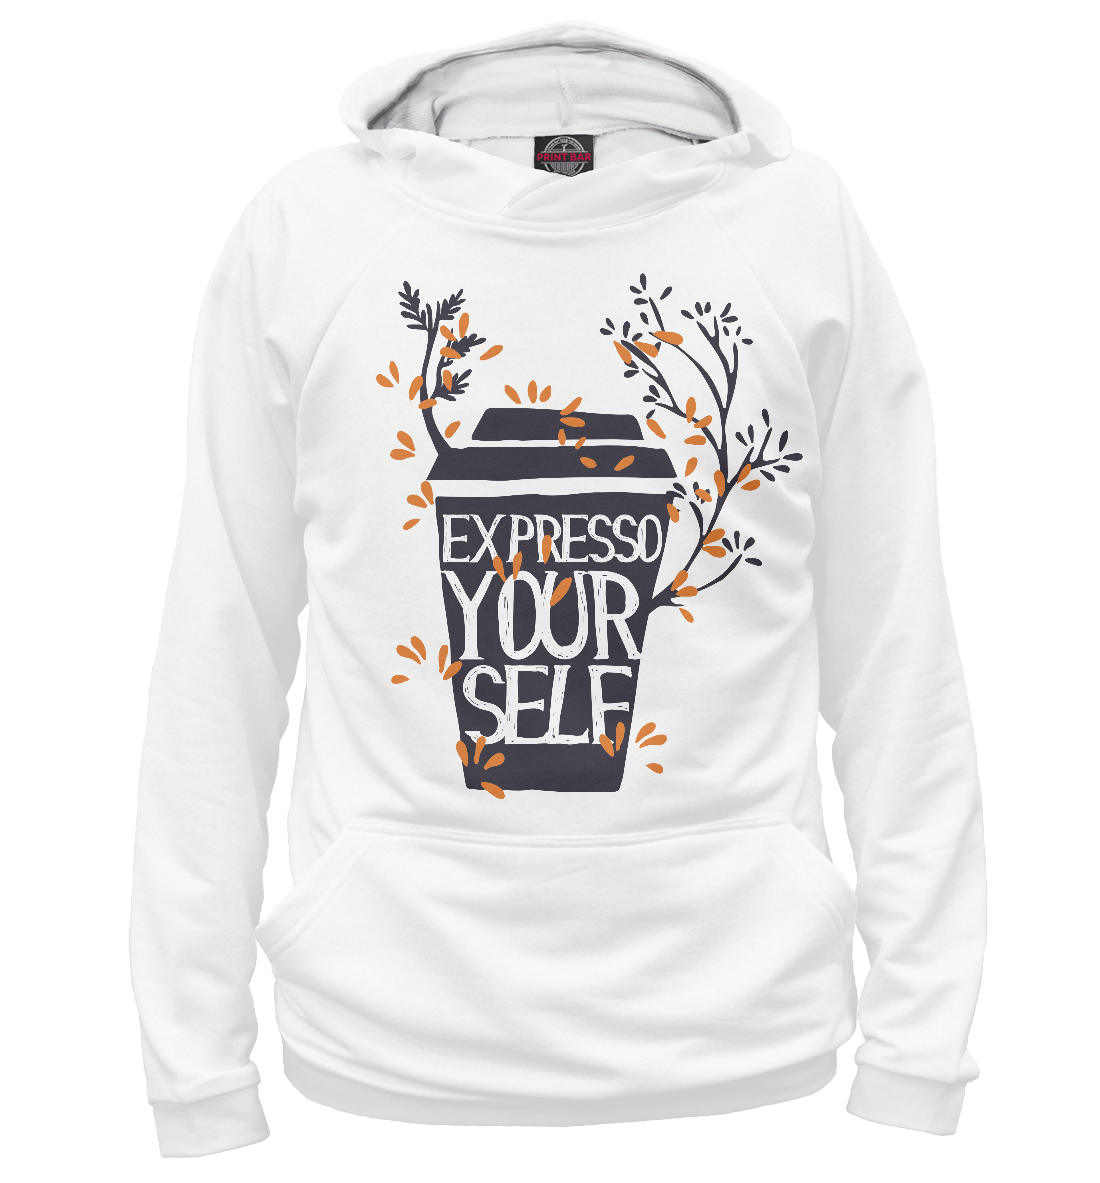 sophie saint thomas finding your higher self Expresso your self